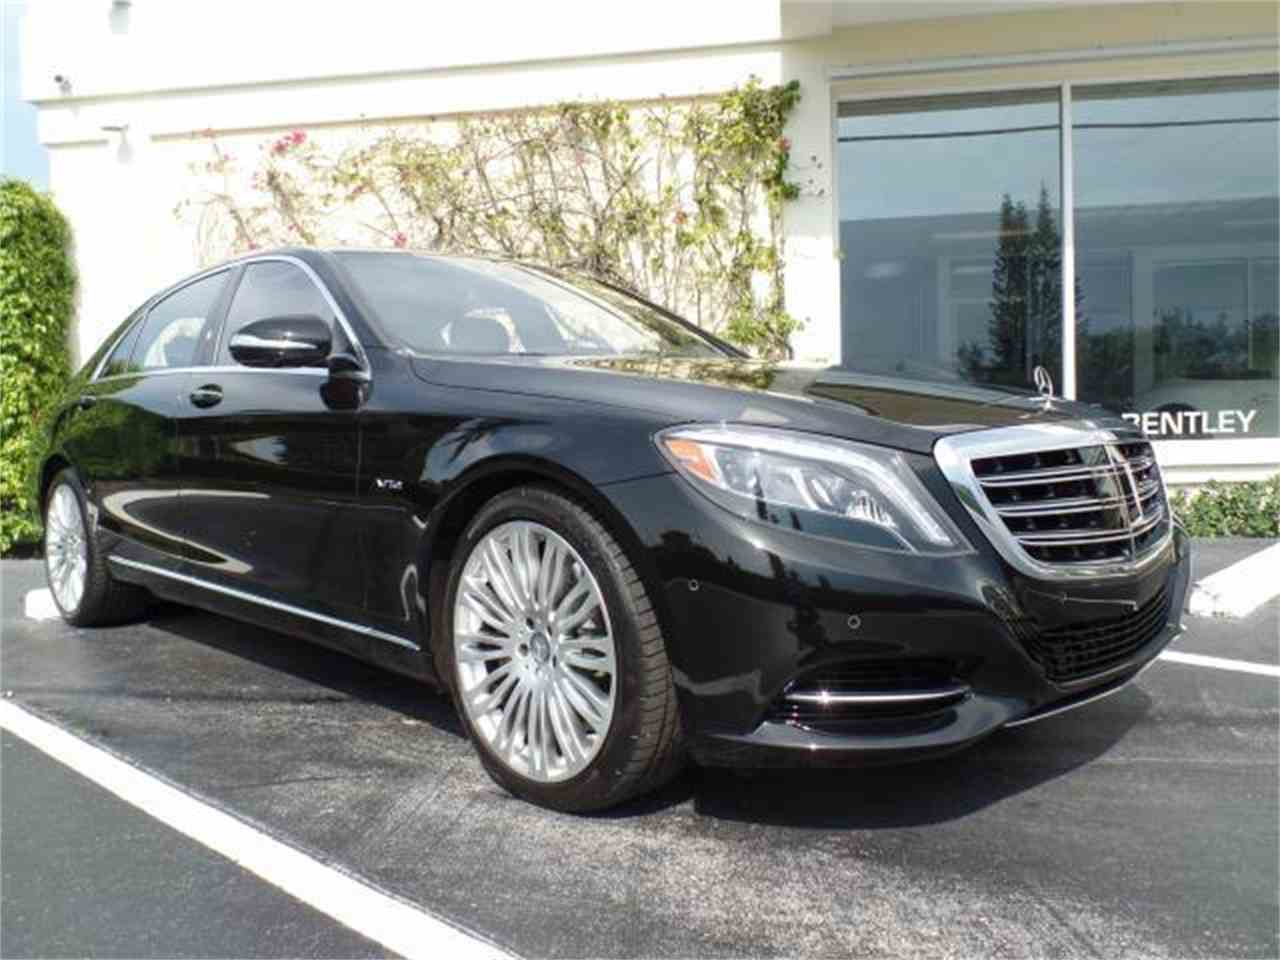 https://ccmarketplace.azureedge.net/cc-temp/listing/84/2887/1120701-2015-mercedes-benz-s600-std-c.jpg